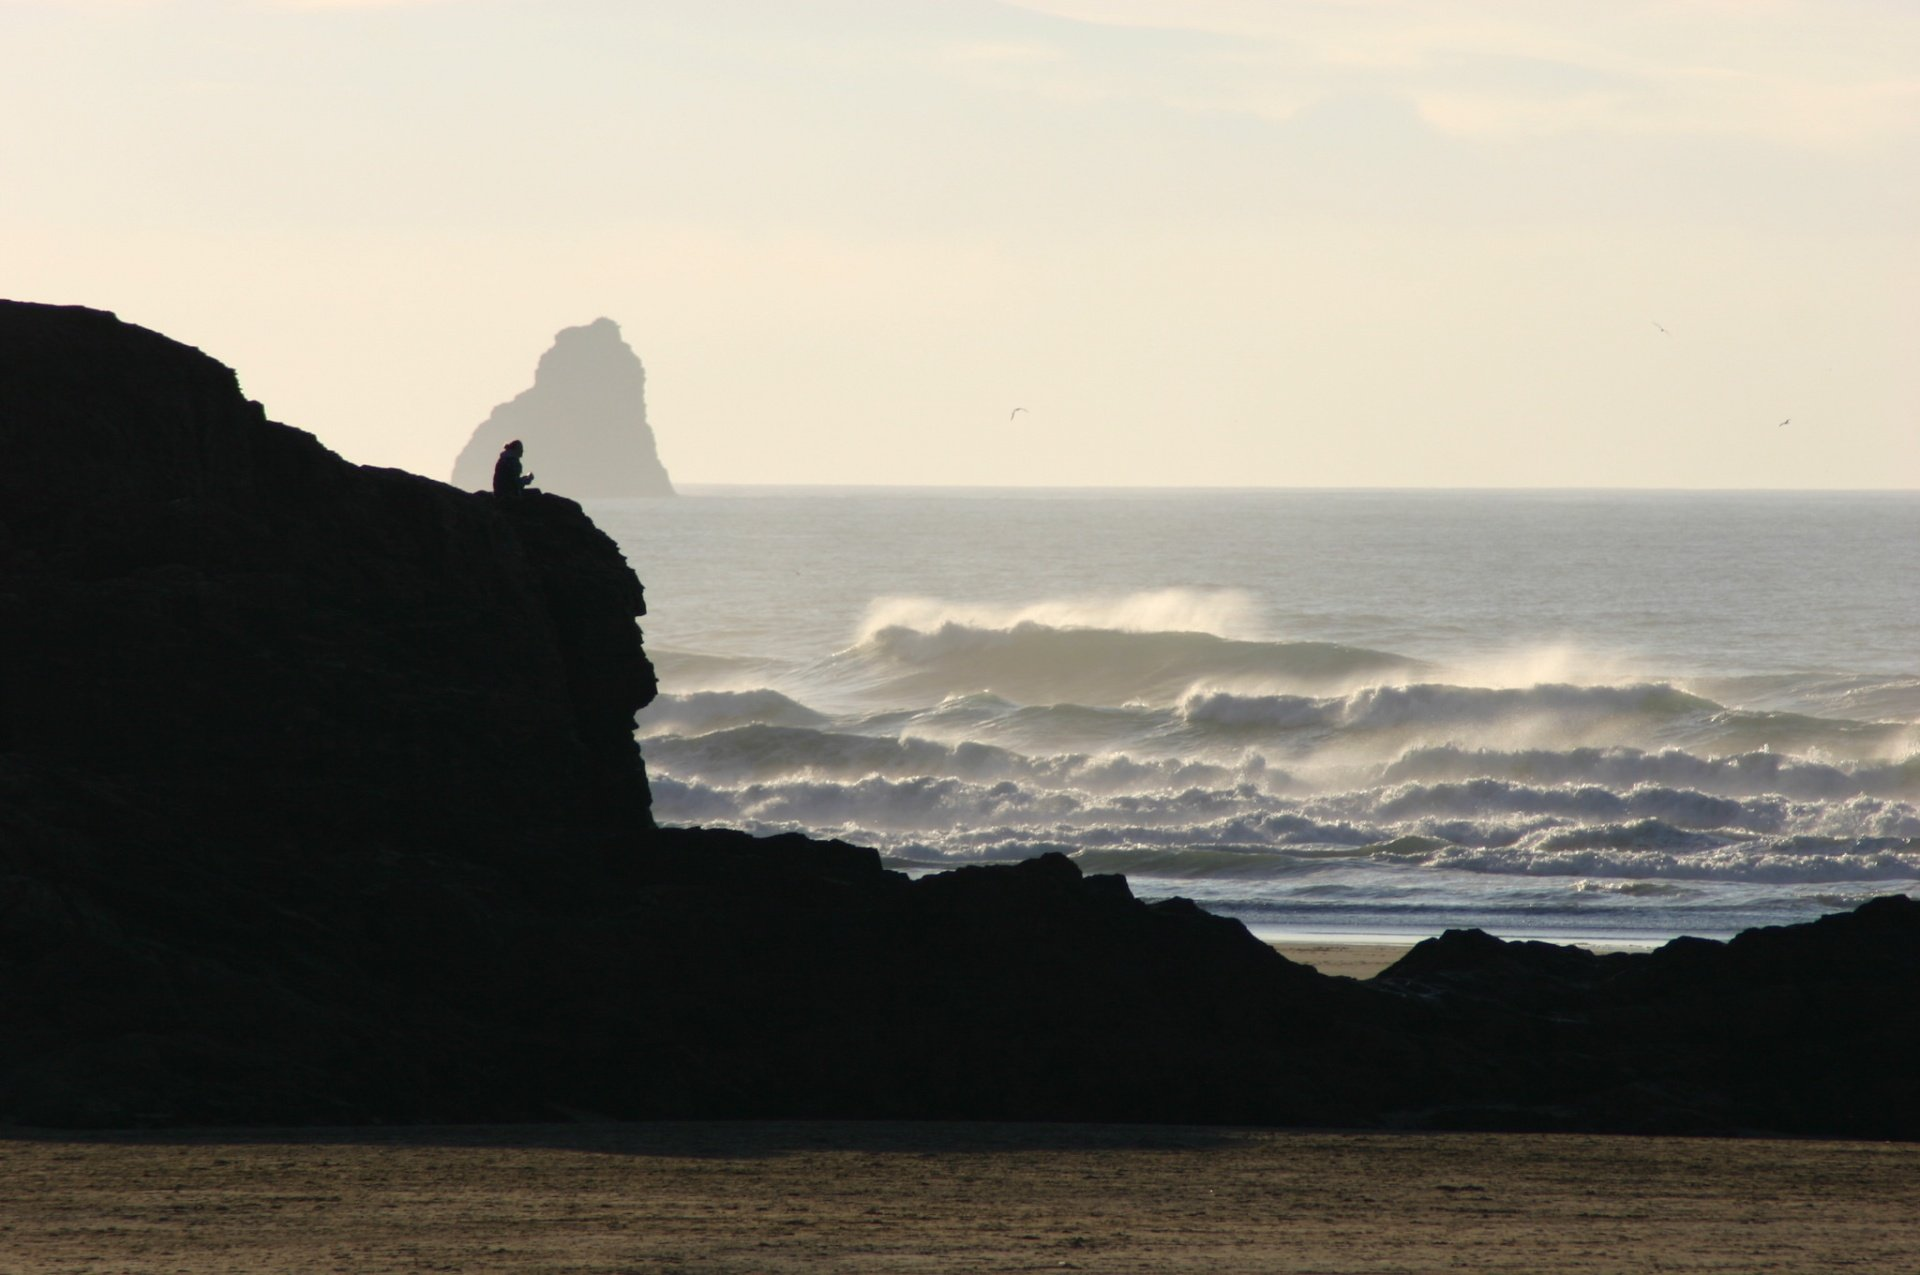 JPiperPhotography's photo of Perranporth (Droskyn)